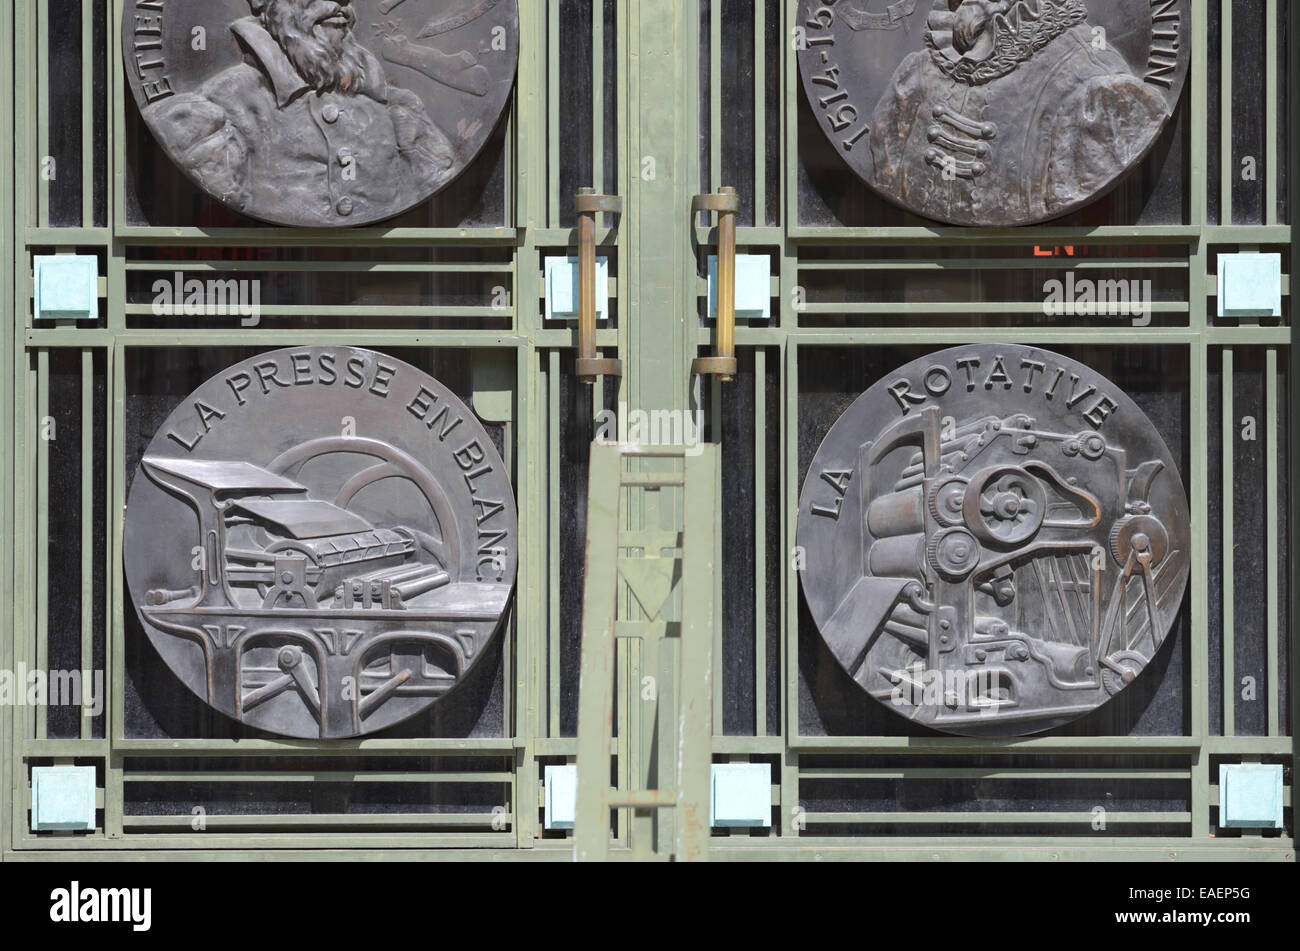 Printing Presses Medallions including Rotary Printing Press 1930s Municipal or Public Library Entrance Toulouse - Stock Image